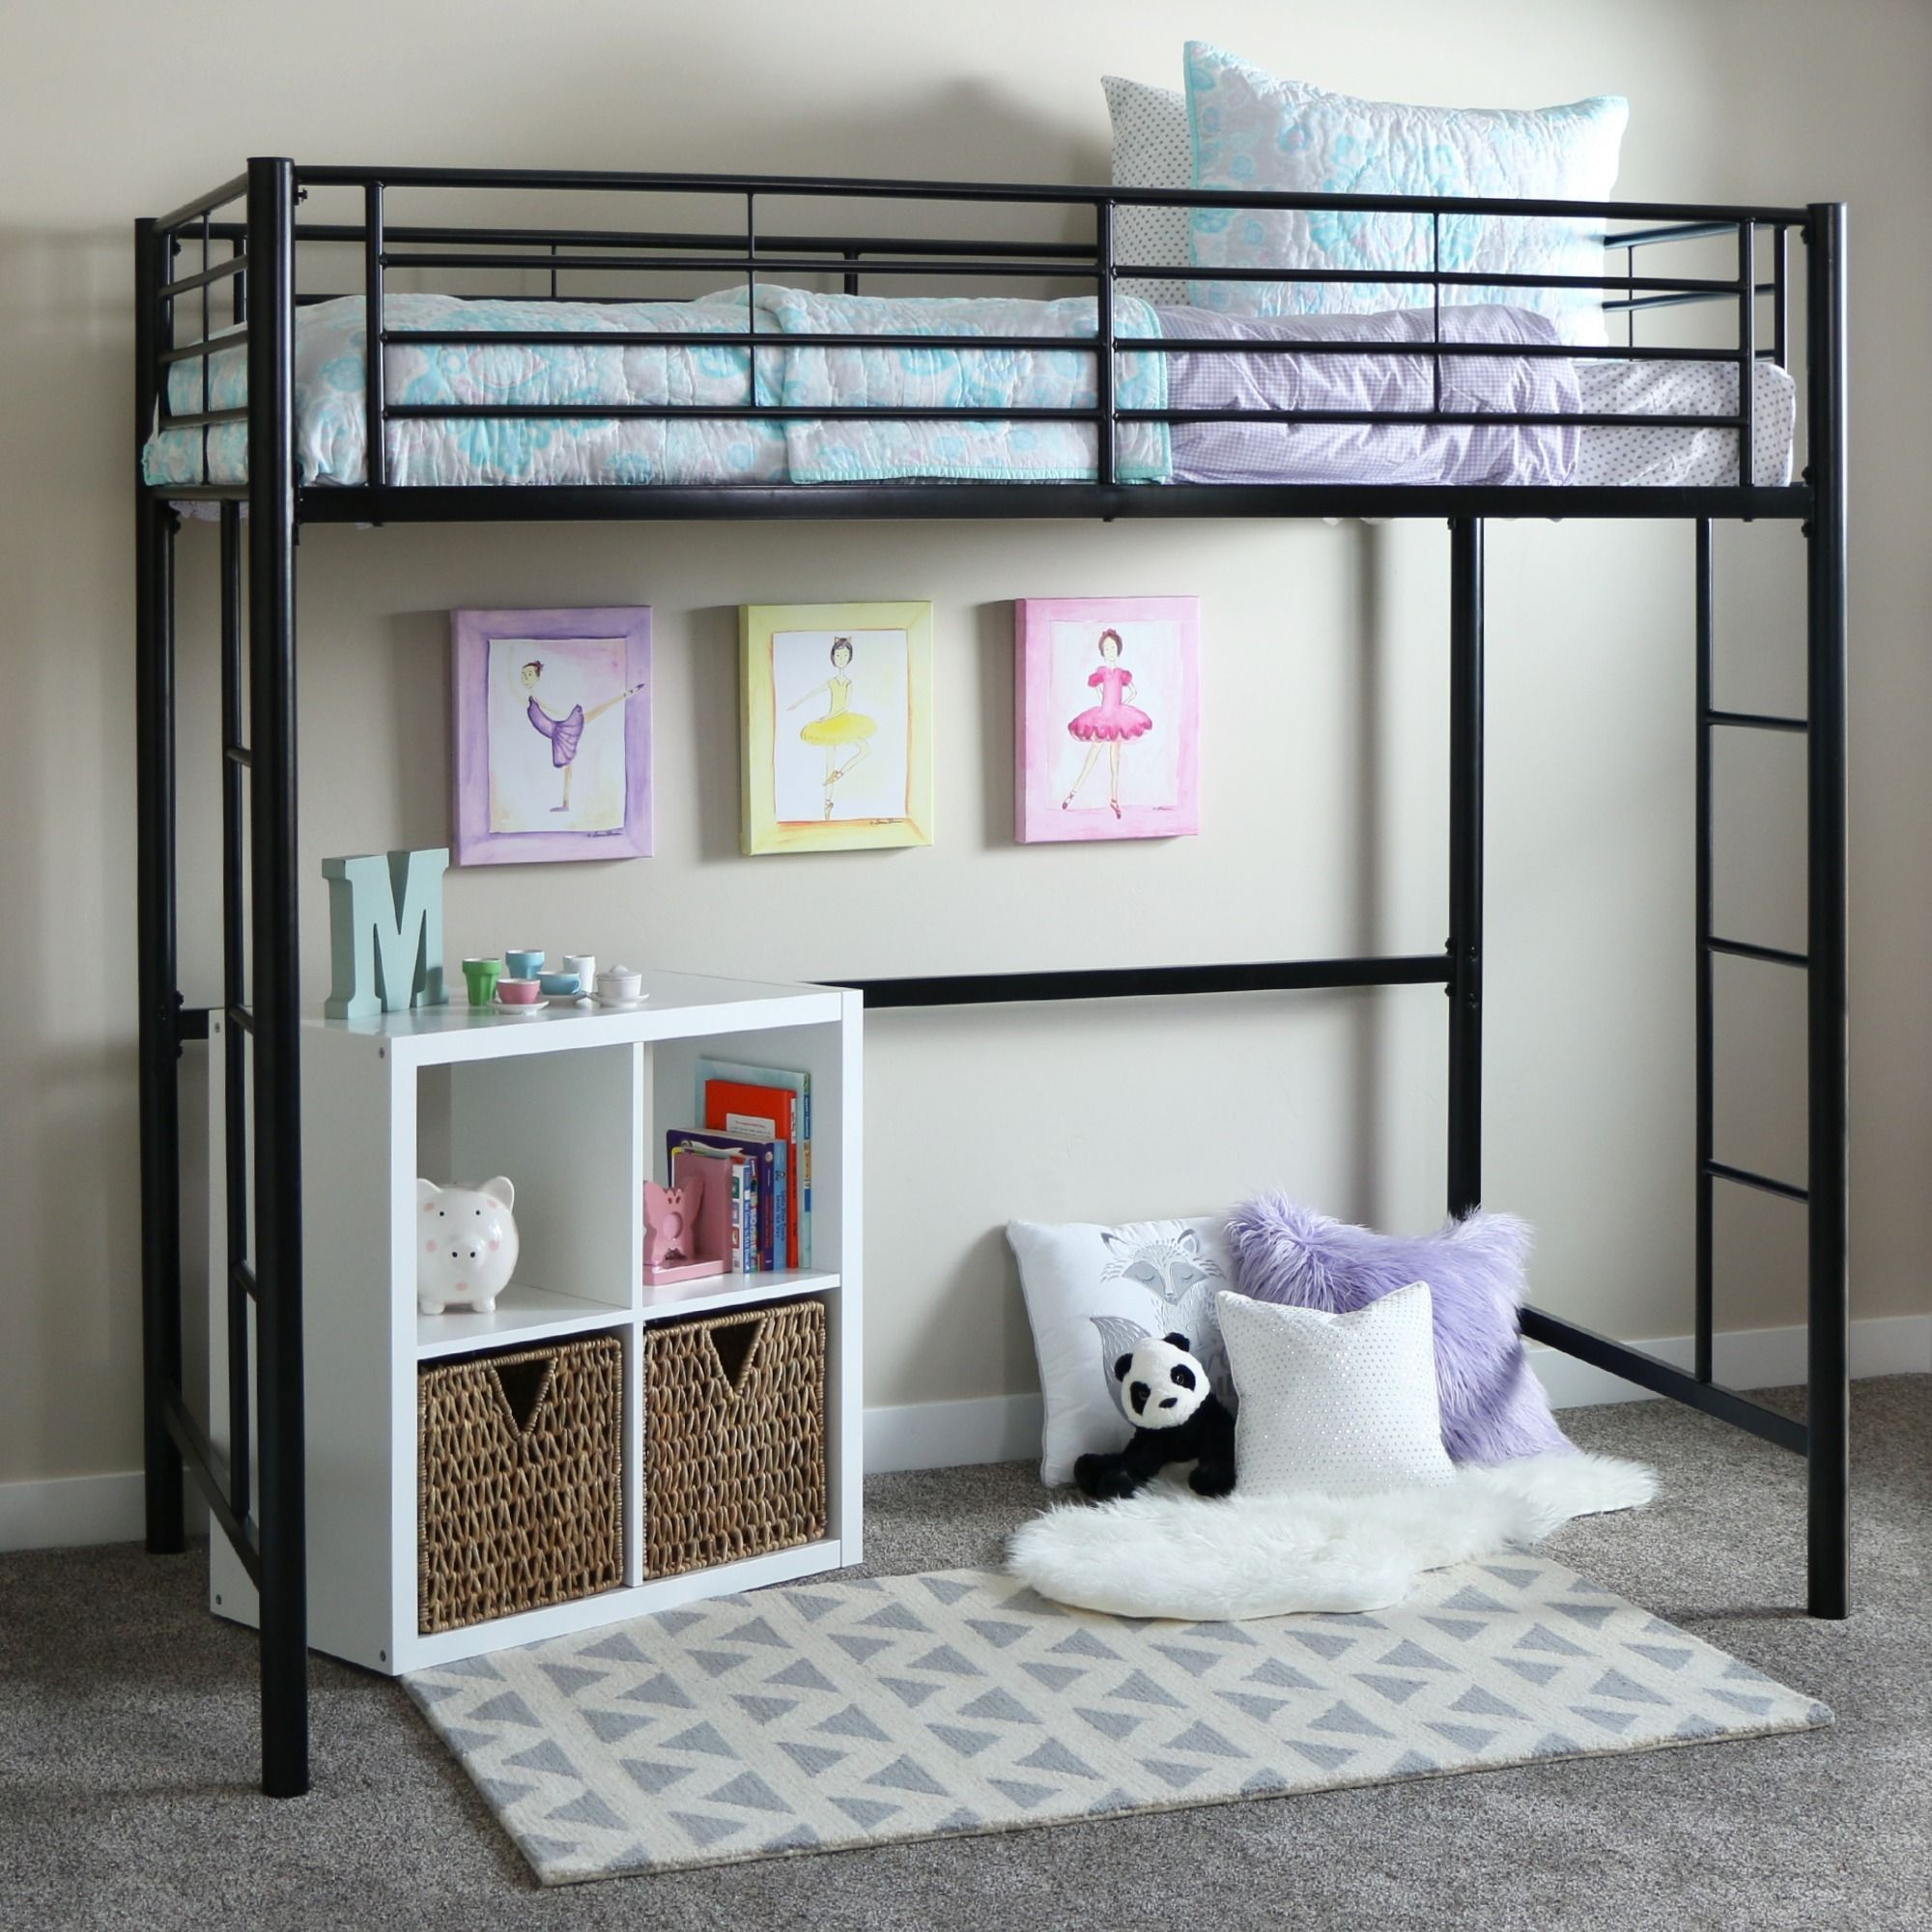 Loft bed with desk full size mattress  Bunk bed features a stylish contemporary design Bed includes full